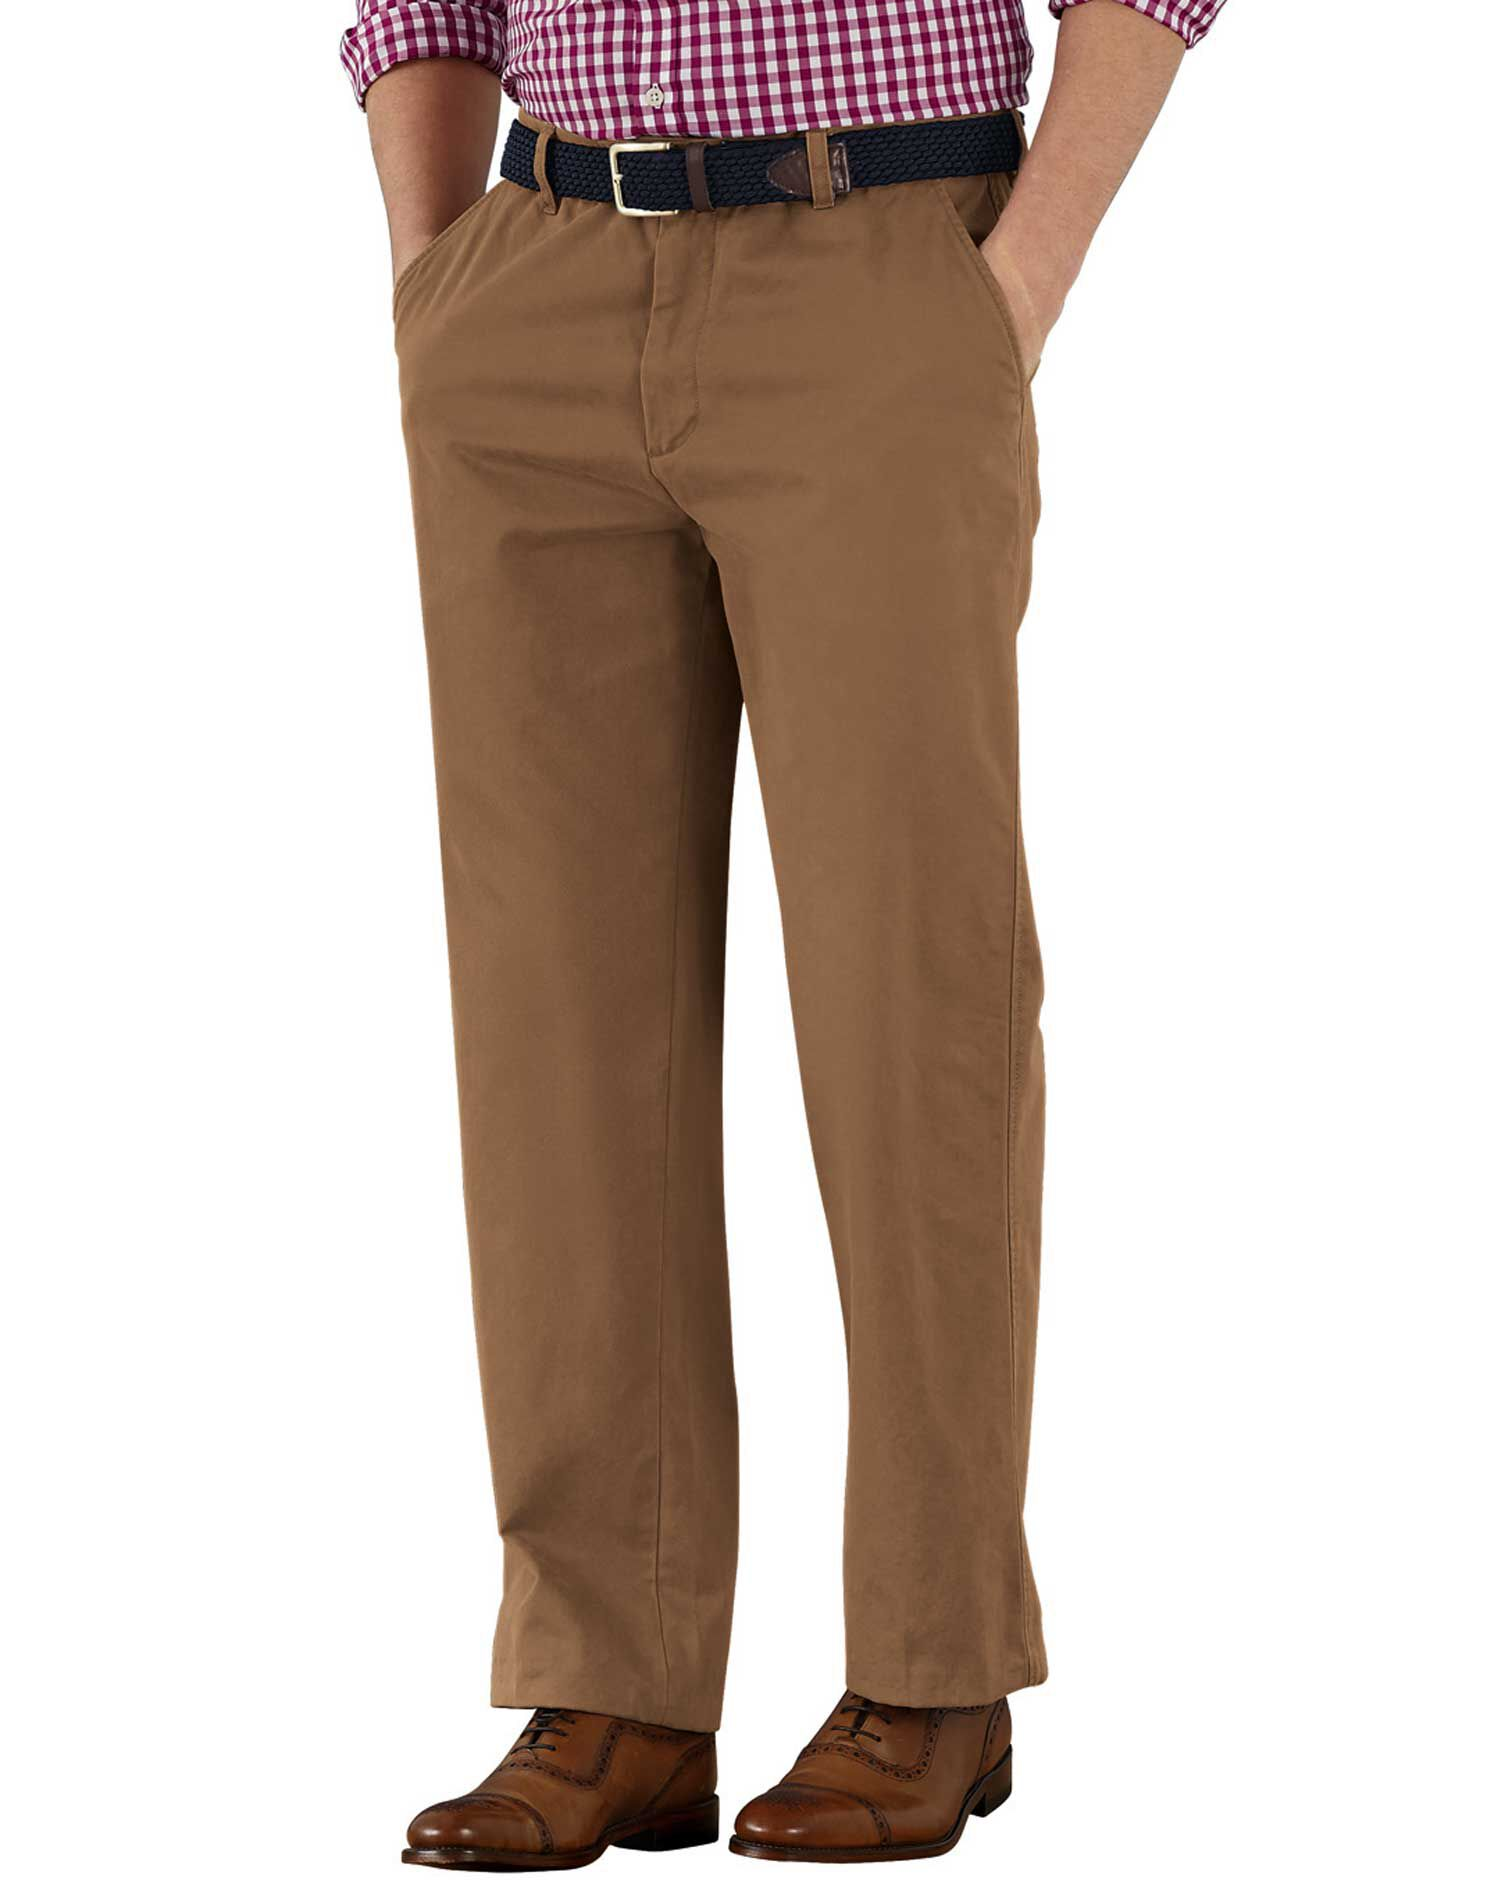 Camel Classic Fit Flat Front Cotton Chino Trousers Size W38 L30 by Charles Tyrwhitt